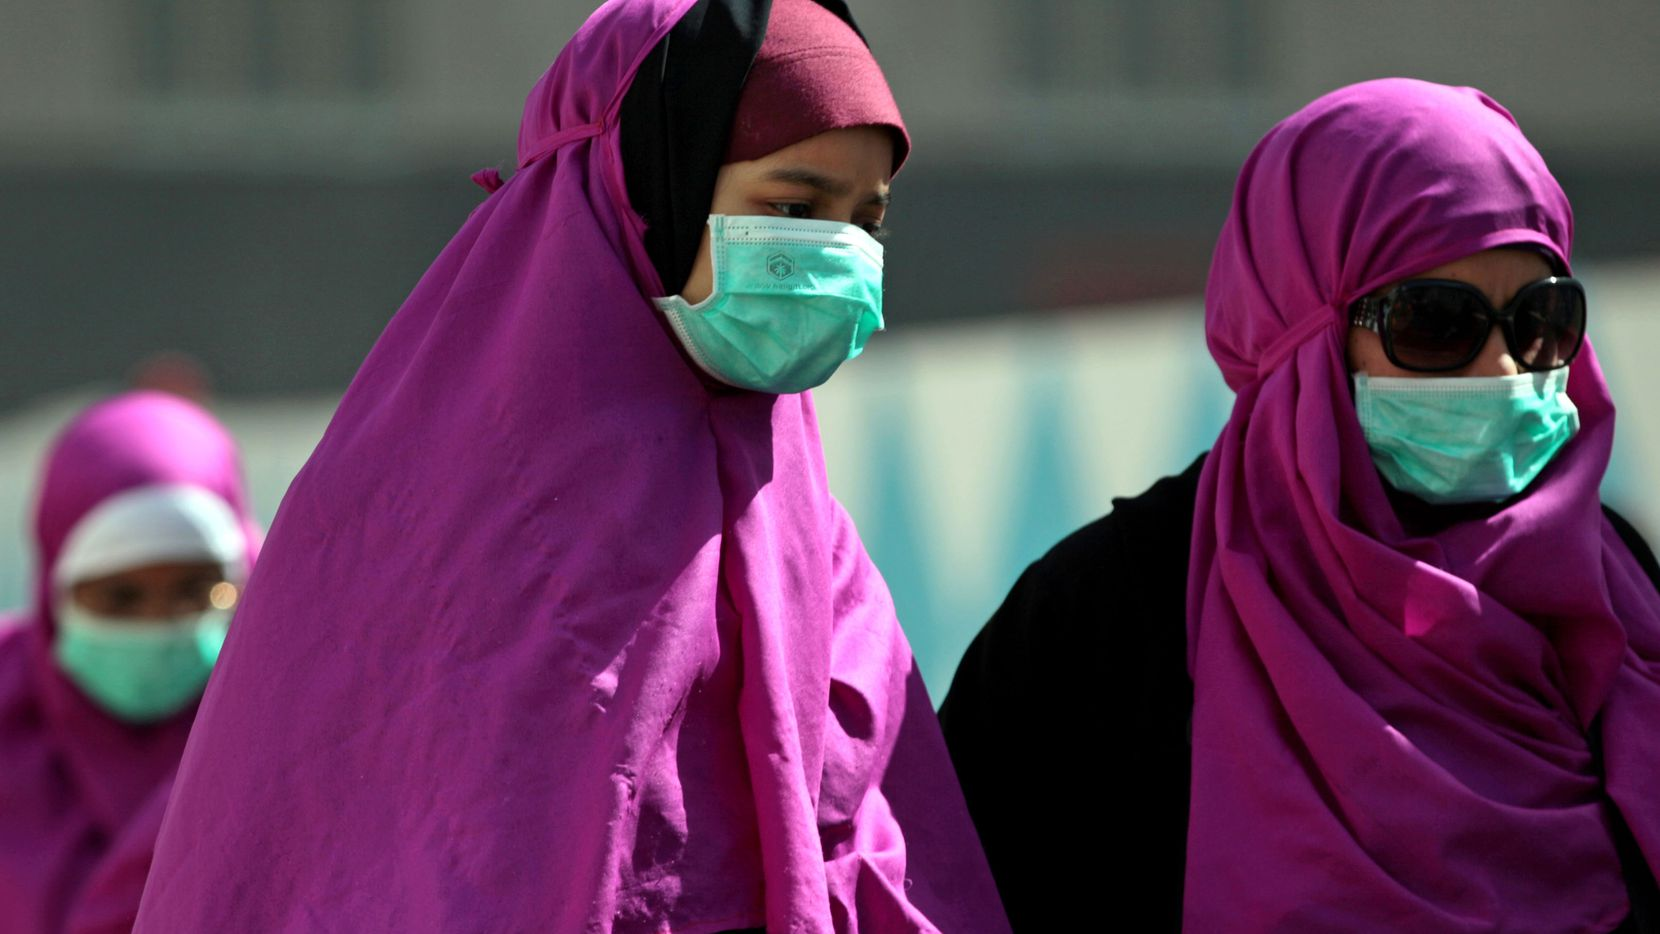 Muslim pilgrims wear surgical masks to prevent infection from respiratory virus MERS in the holy city of Mecca, Saudi Arabia. Officials in Saudi Arabia are raising alarm that the kingdom is not doing enough to prevent Mecca from becoming a route for exporting an often deadly respiratory virus.